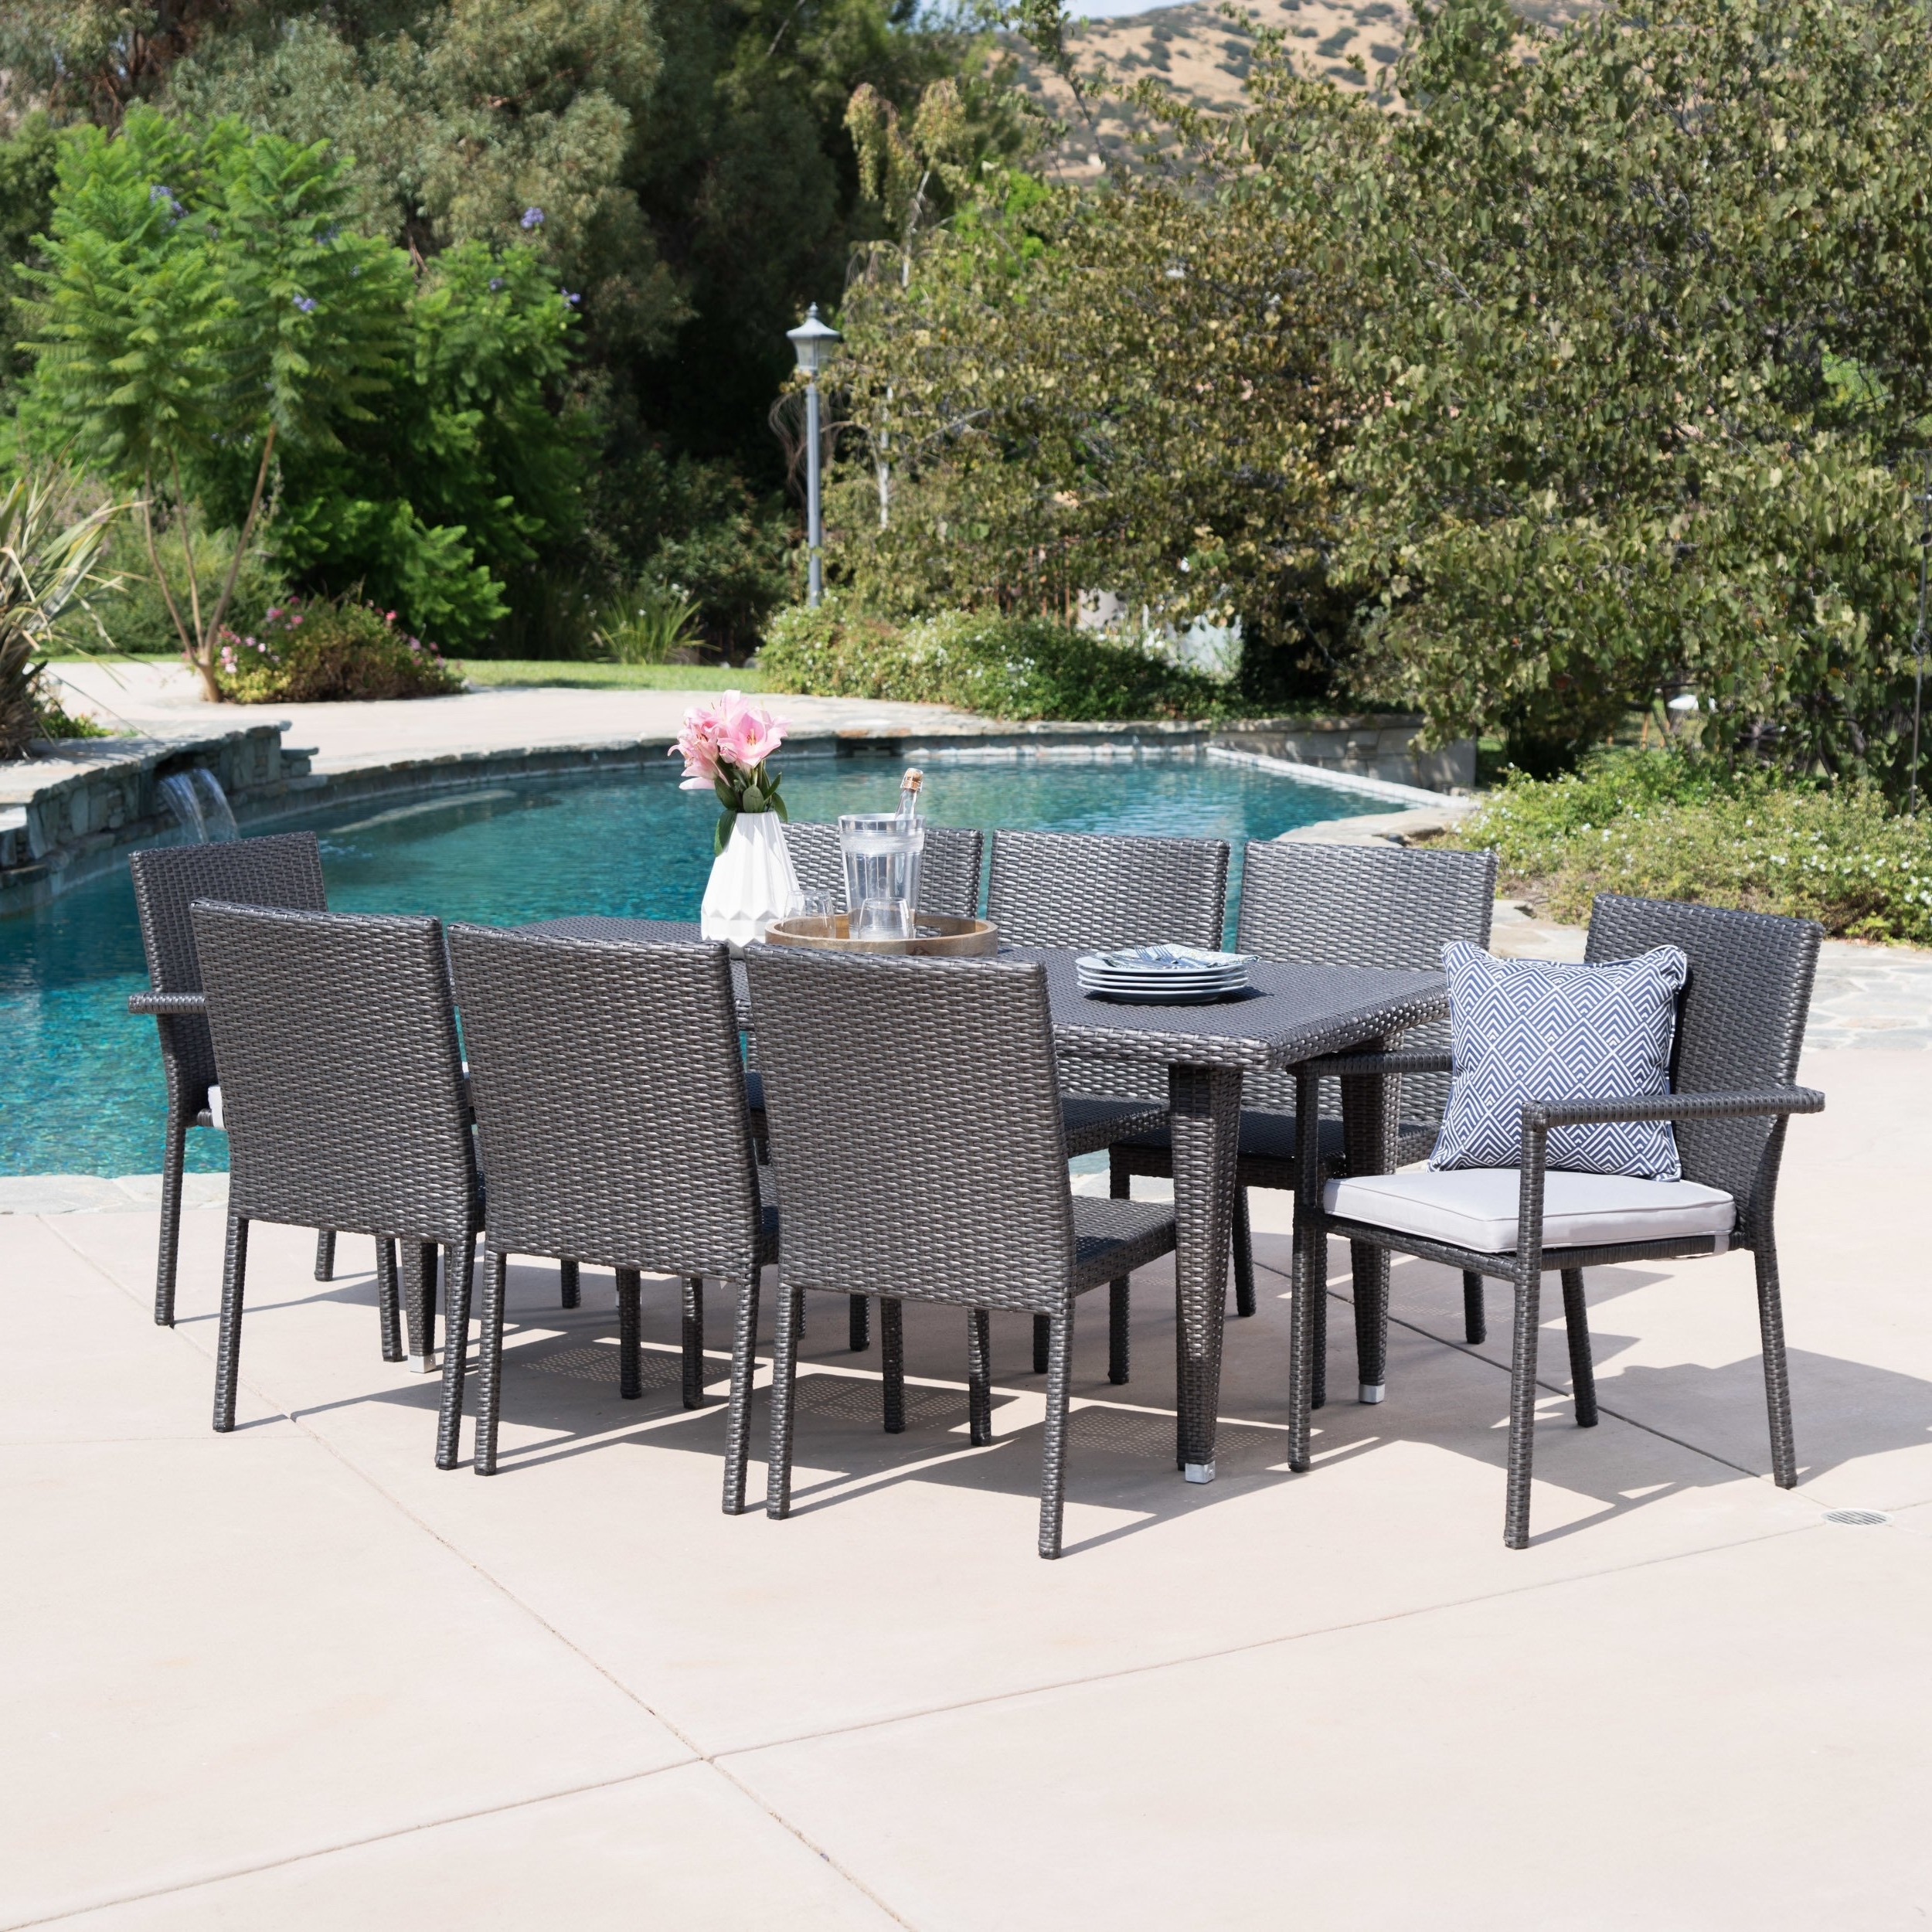 Newest Shop Grady Outdoor 9 Piece Rectangular Wicker Dining Set With Within Grady 5 Piece Round Dining Sets (View 11 of 25)